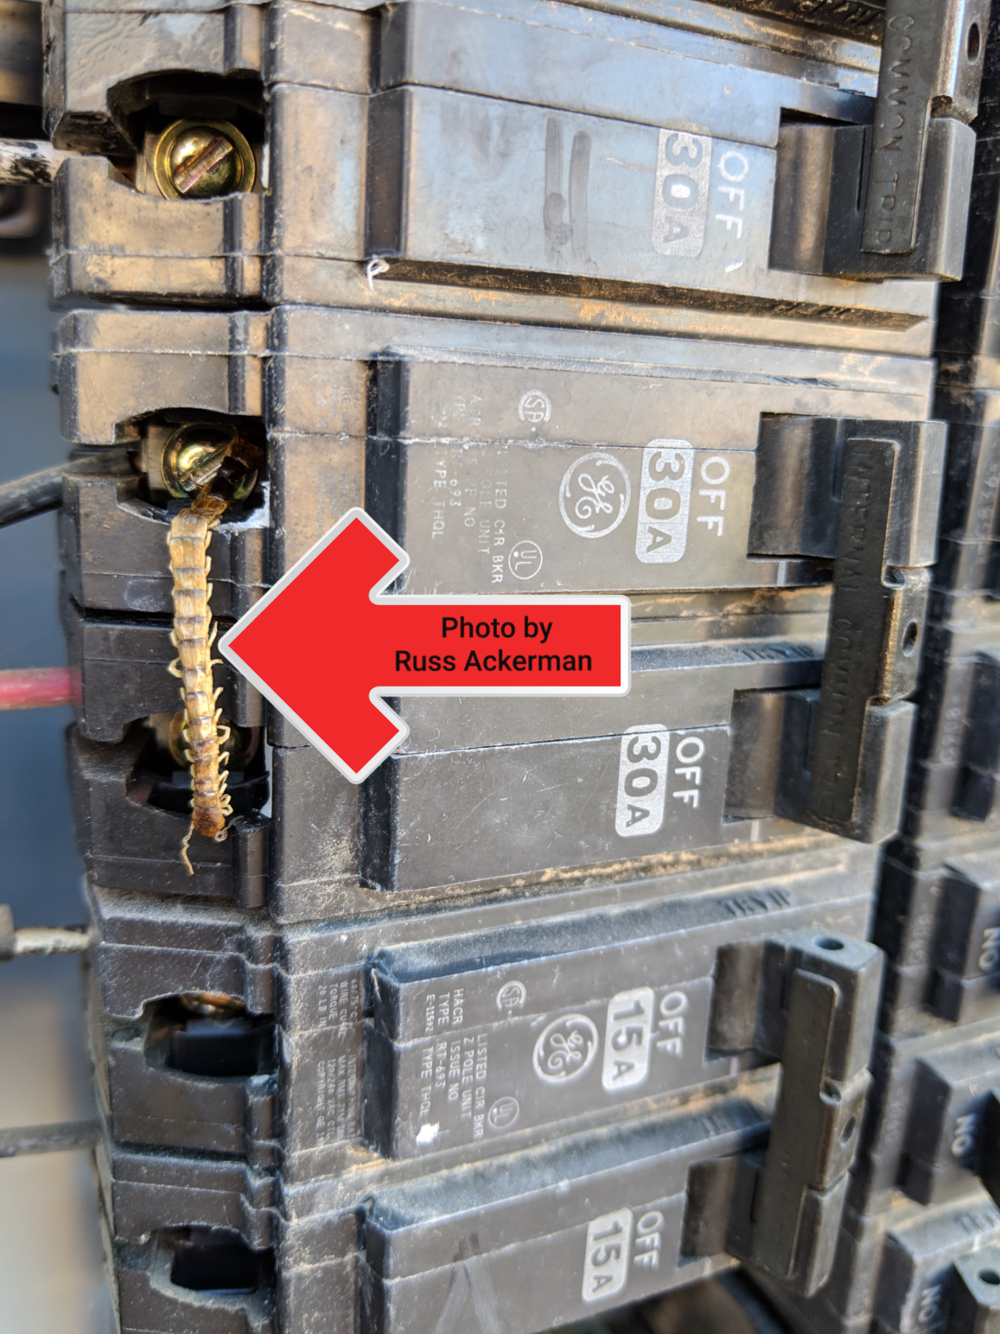 This centipede rolled to its death when it ran across a 120 volt electrical breaker.